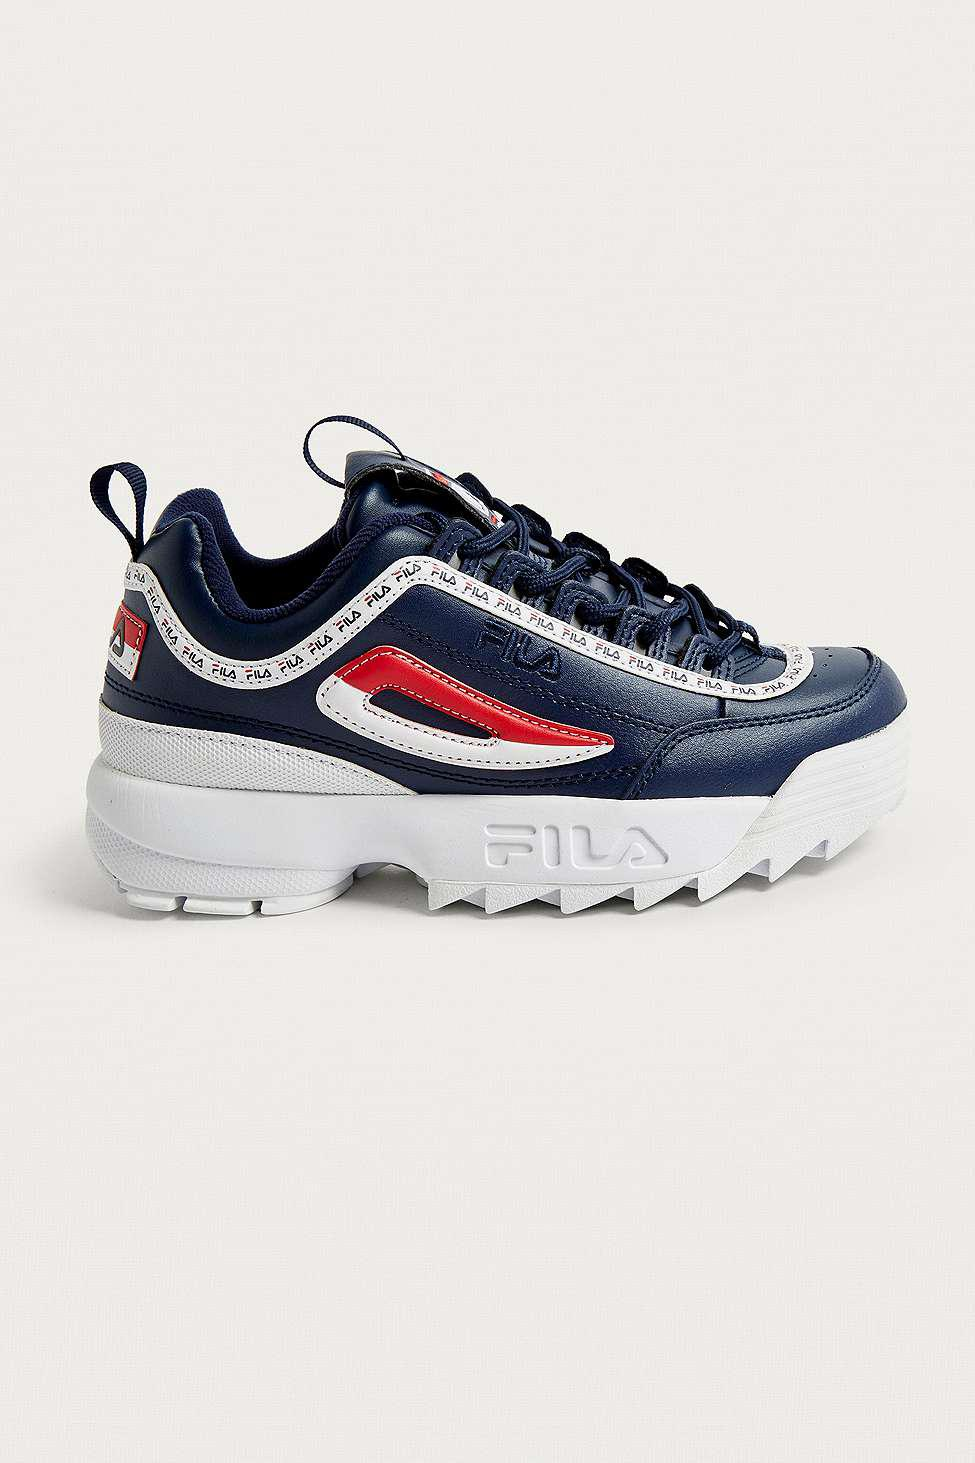 99a25016de Fila Disruptor Ii Premium Navy Trainers - Womens Uk 3 in Blue - Lyst